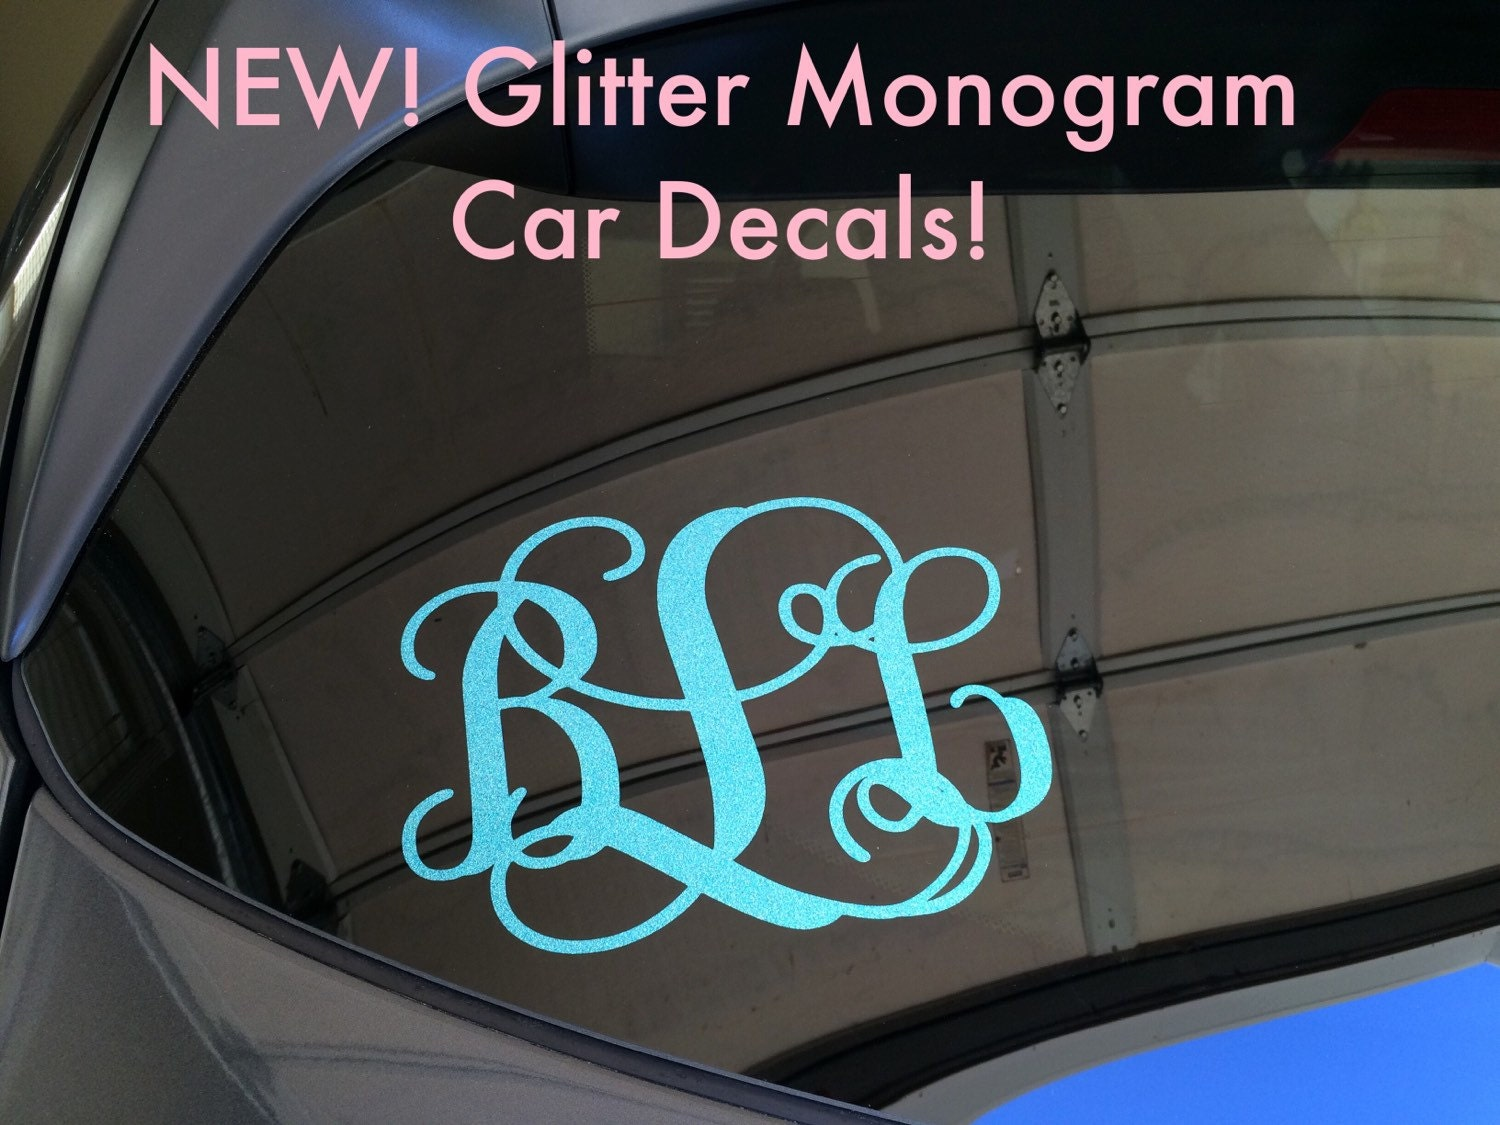 Glitter Monogram Decal Glitter Car Decal Glitter Monogram